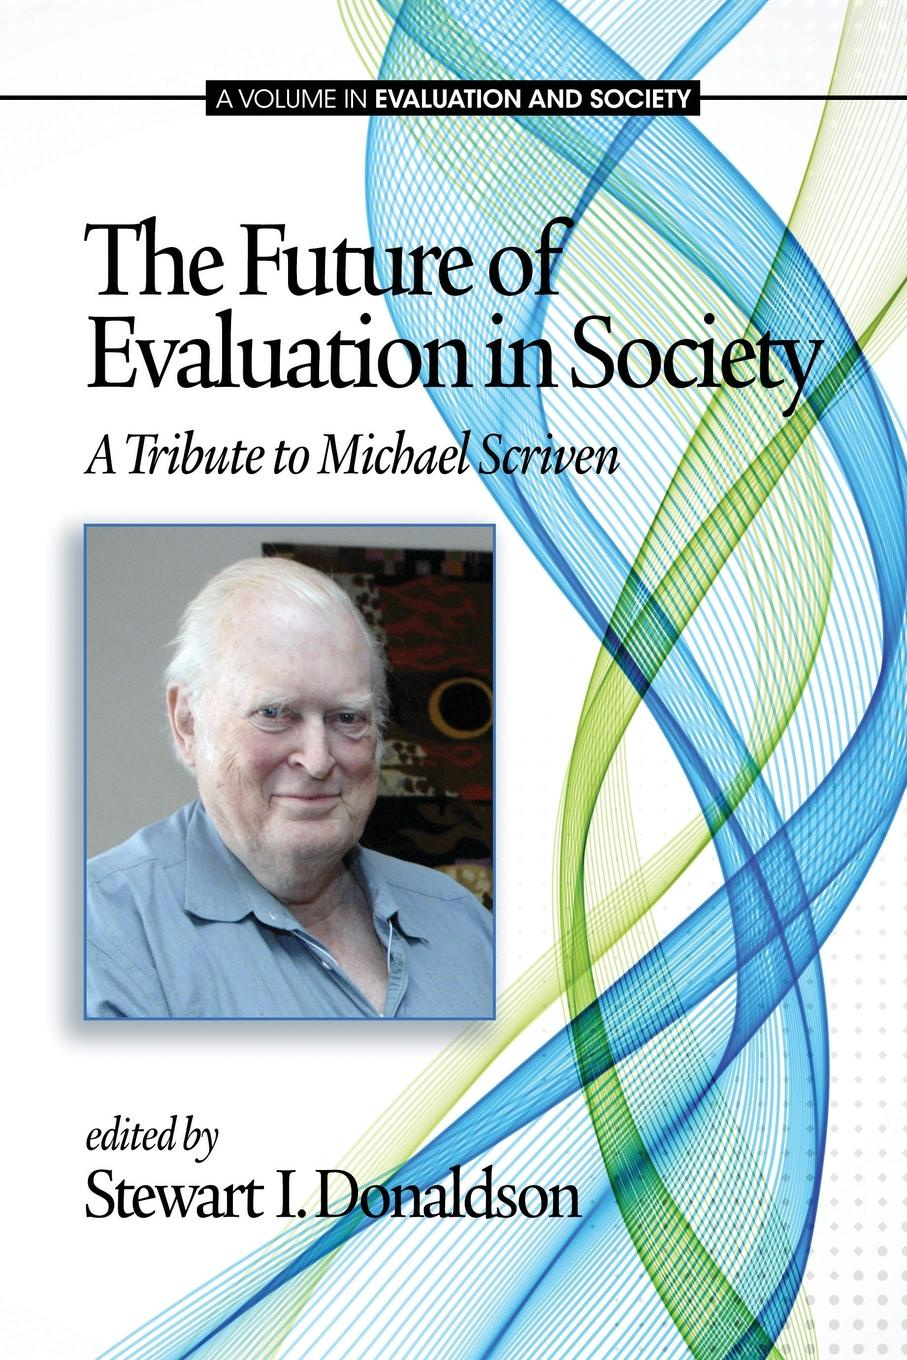 The Future of Evaluation in Society. A Tribute to Michael Scriven formulation and evaluation of amlodipine besylate tablets